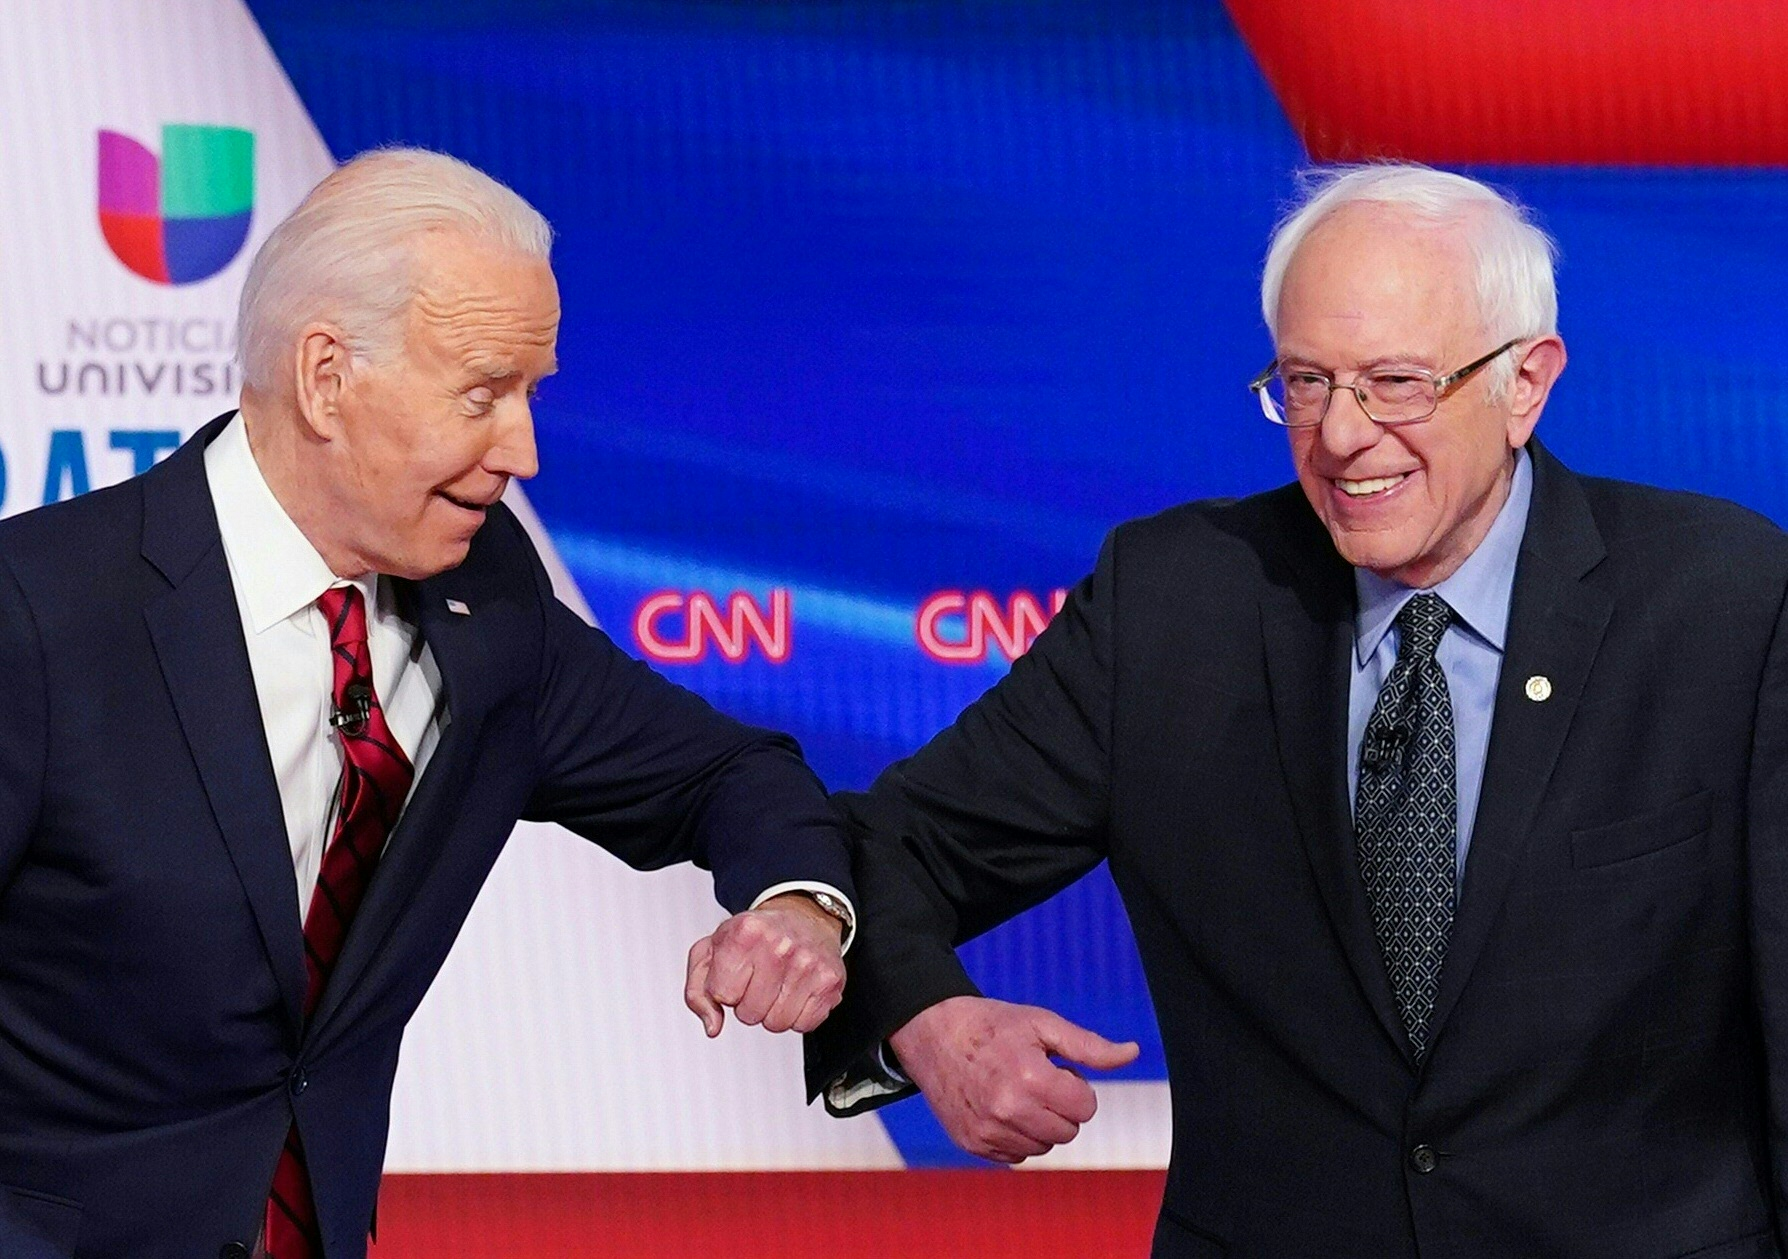 Joe Biden and Bernie Sanders greet each other with an elbow bump as they arrive for the 11th Democratic Party 2020 presidential debate in a CNN Washington Bureau studio on March 15, 2020. (MANDEL NGAN/AFP via Getty Images)